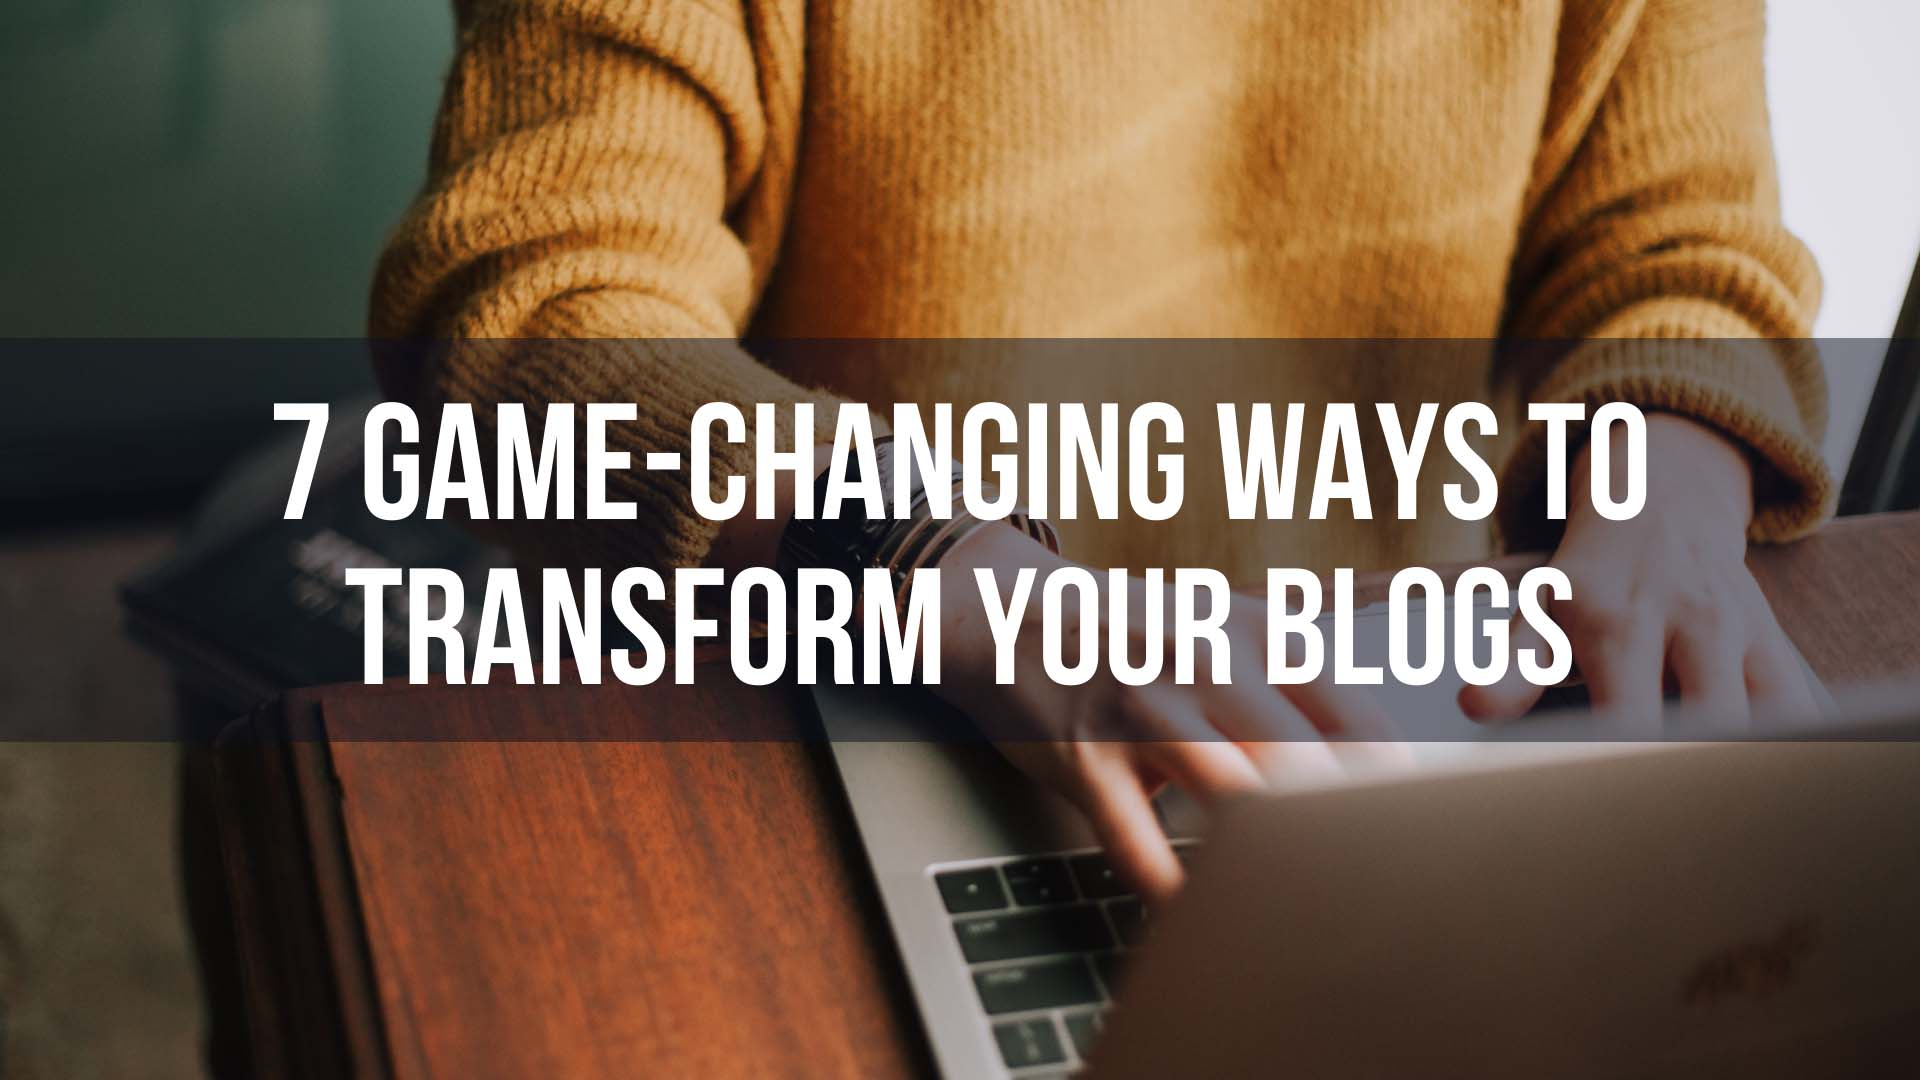 blog, blogs, blog writing, blog tips, transform your blogs, take blogs to next level, tips for blogs, blog strategies, small business blog, startup blog, blogs are important, why blog, blogging